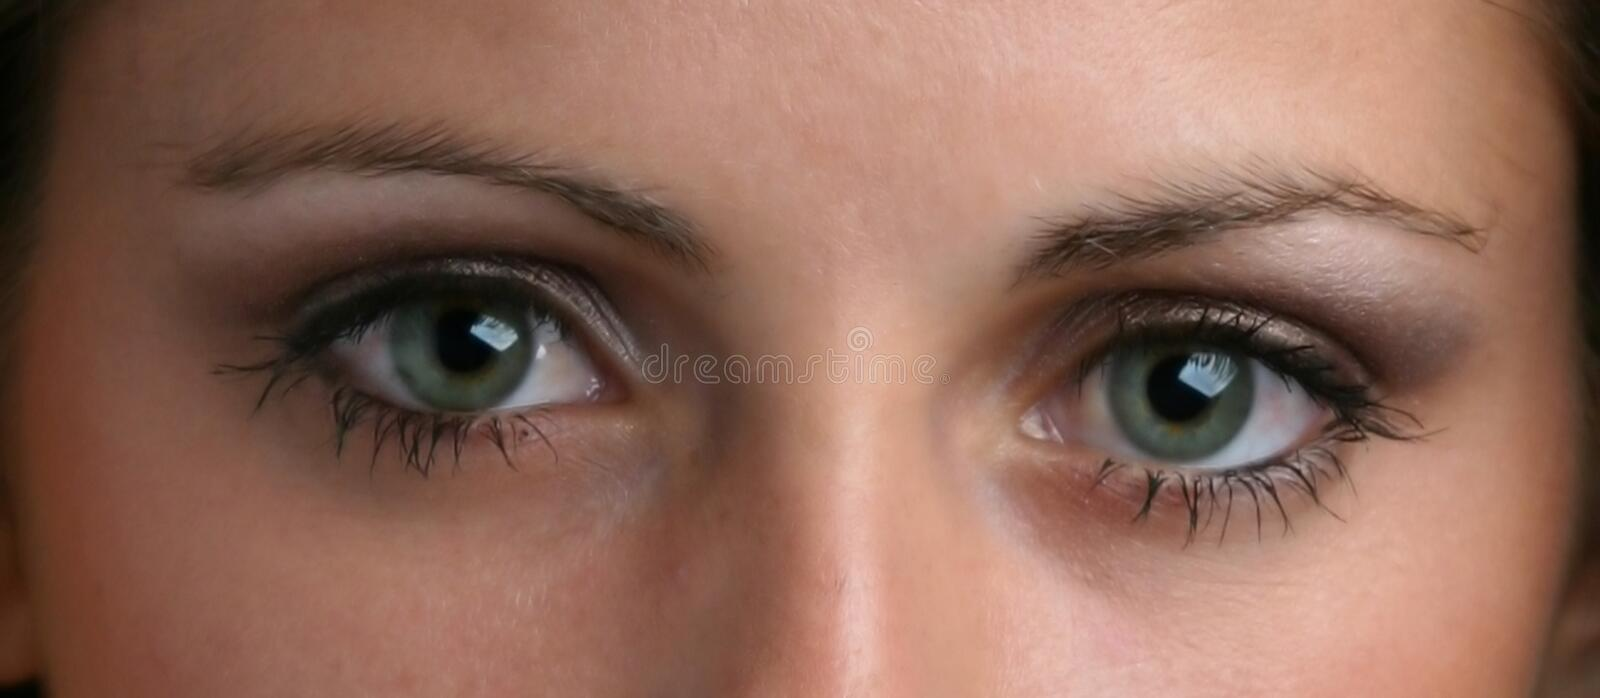 Yeux de espionnage photo stock